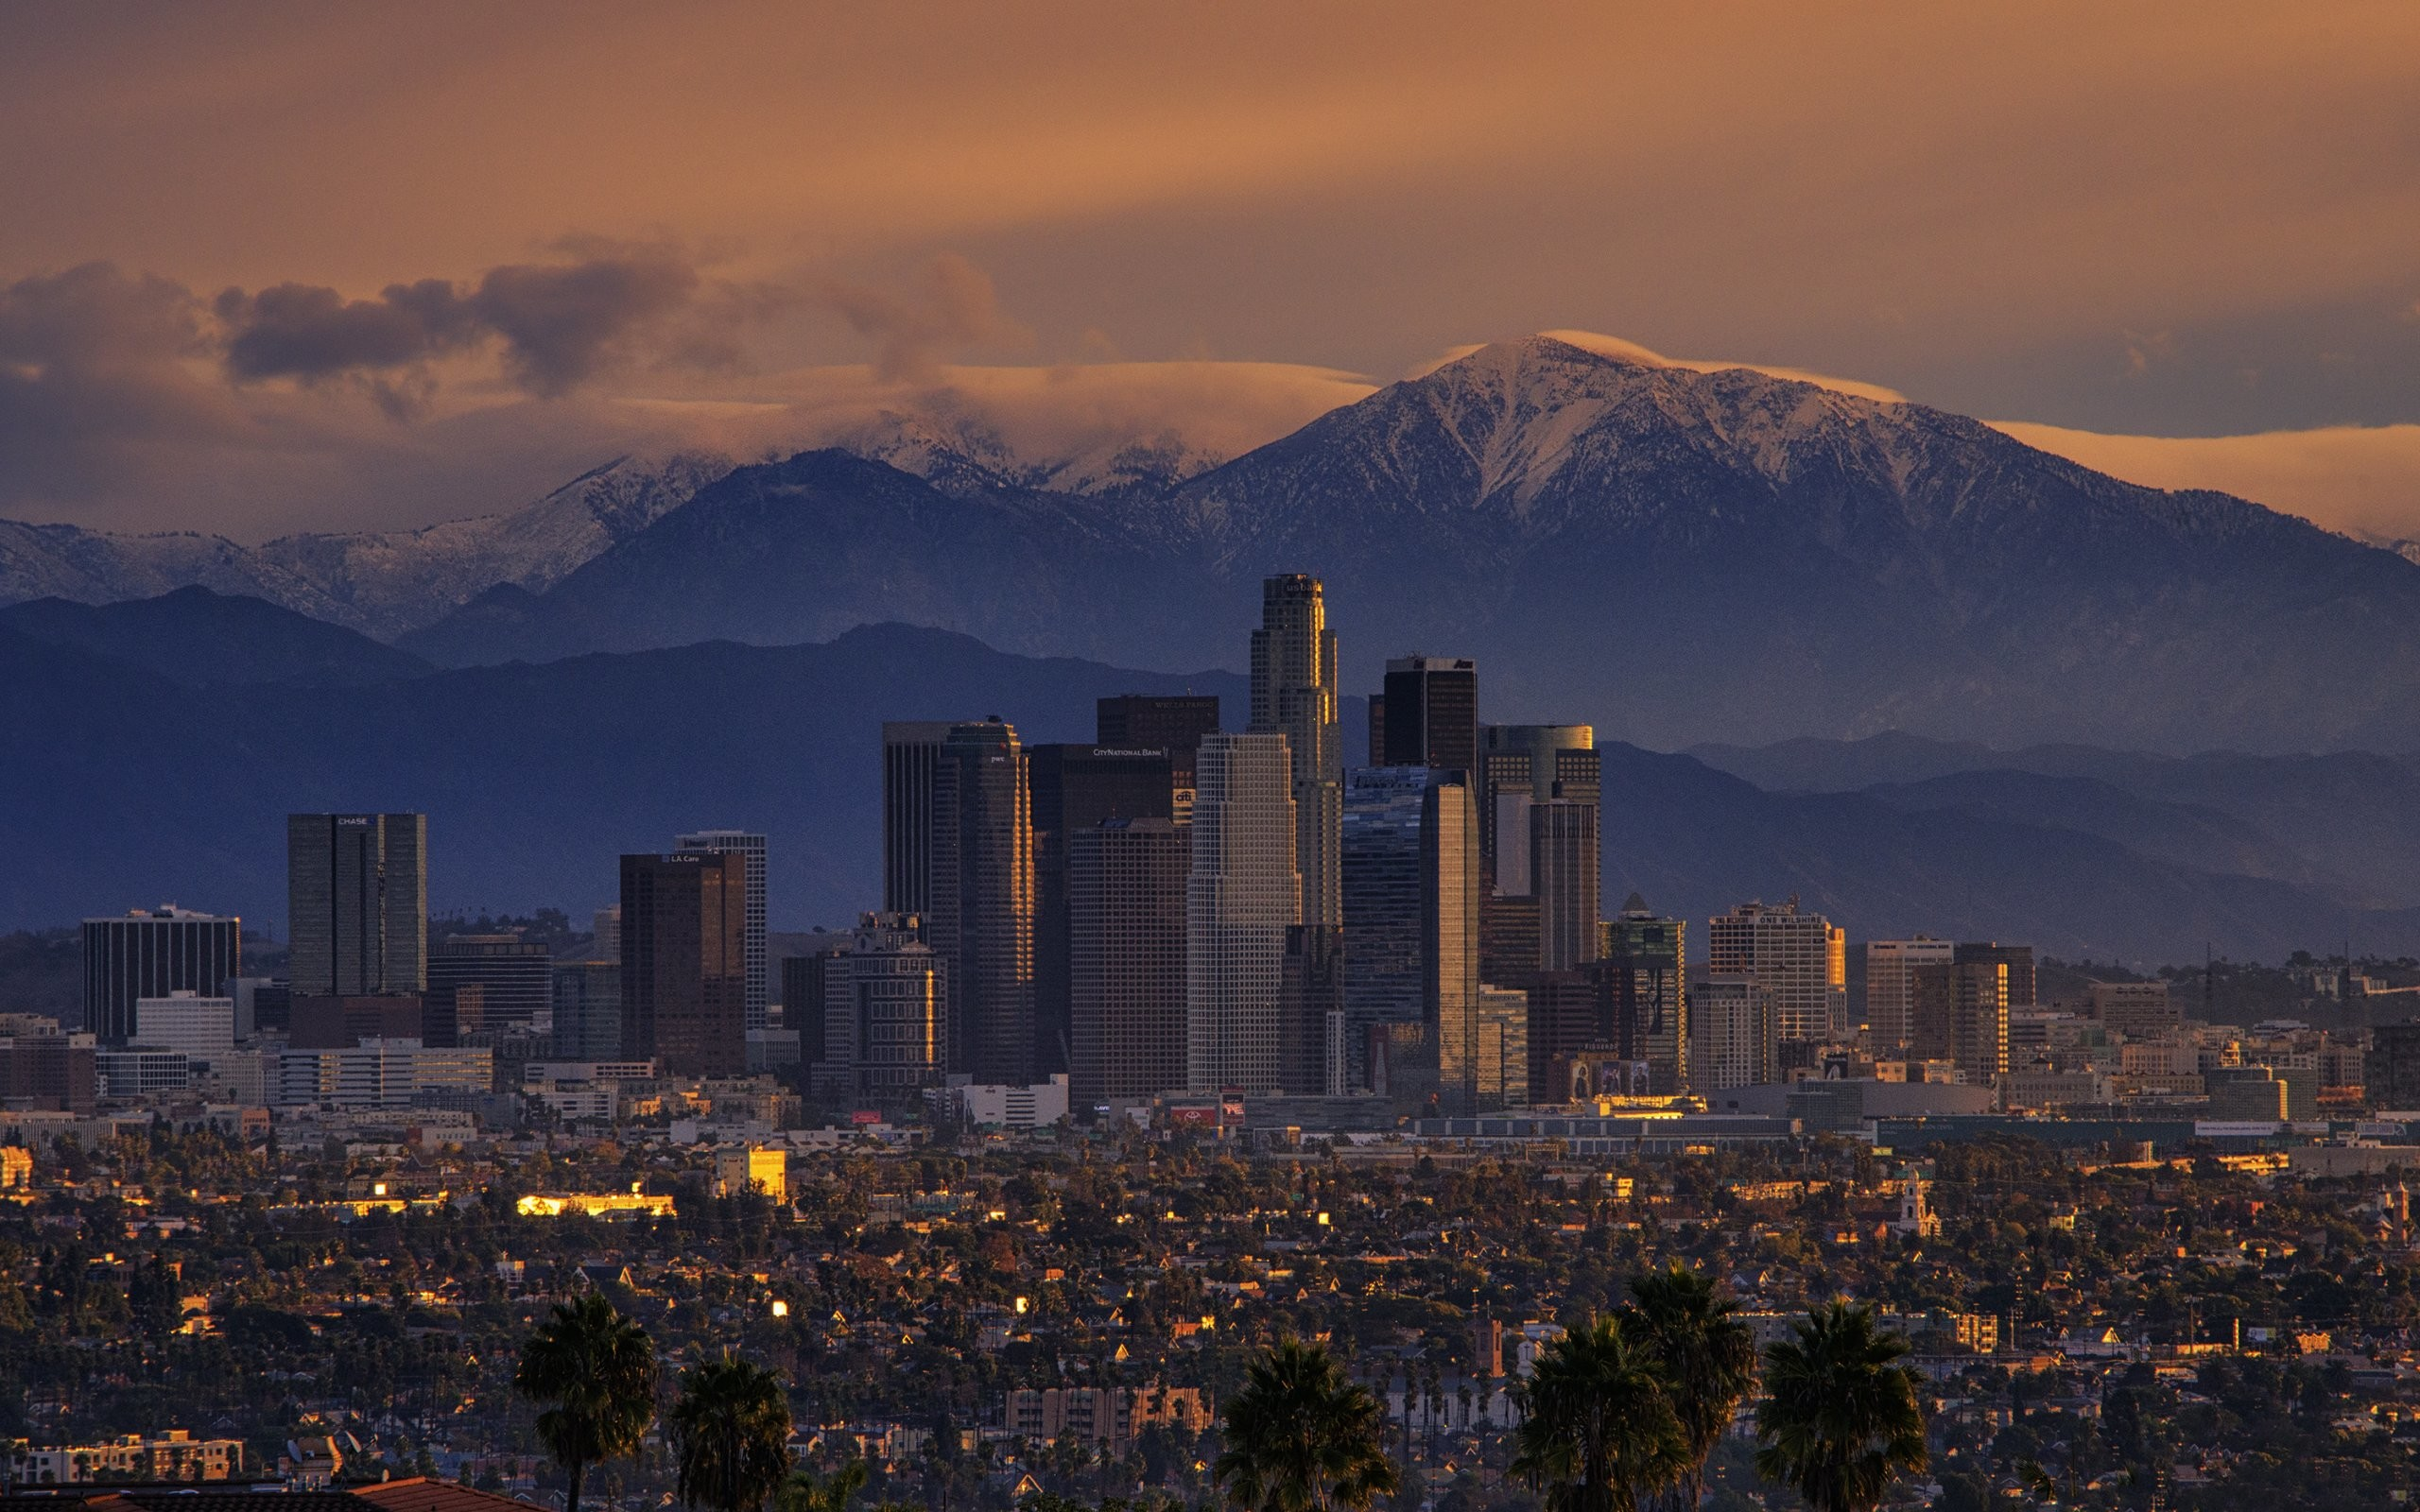 Los Angeles 4K Wallpaper 56 images 2560x1600